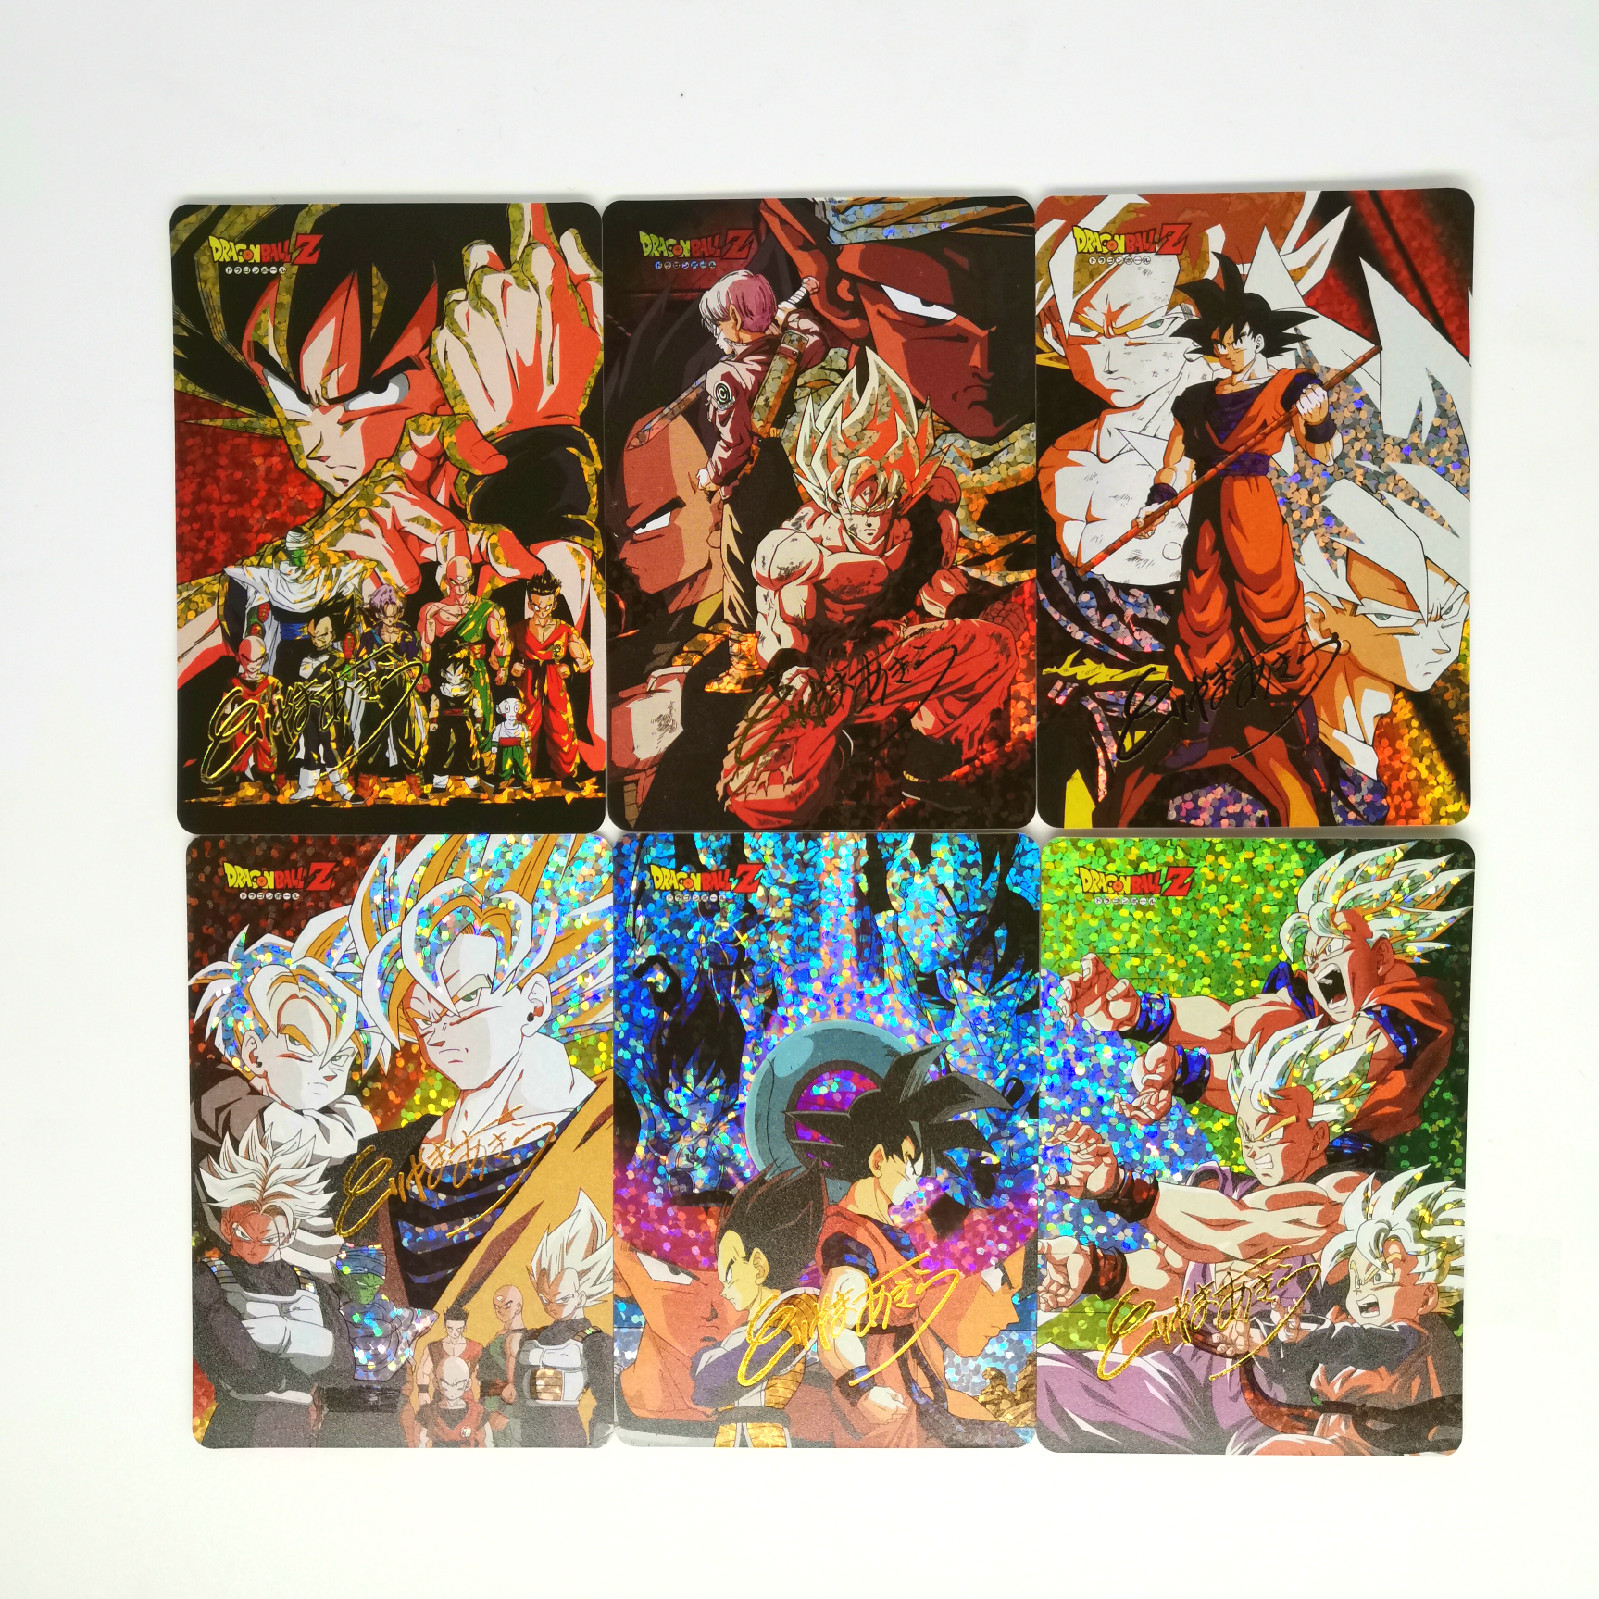 9pcs Super Dragon Ball Z Toriyama Akira Signature Heroes Battle Card Ultra Instinct Goku Vegeta Game Collection Cards